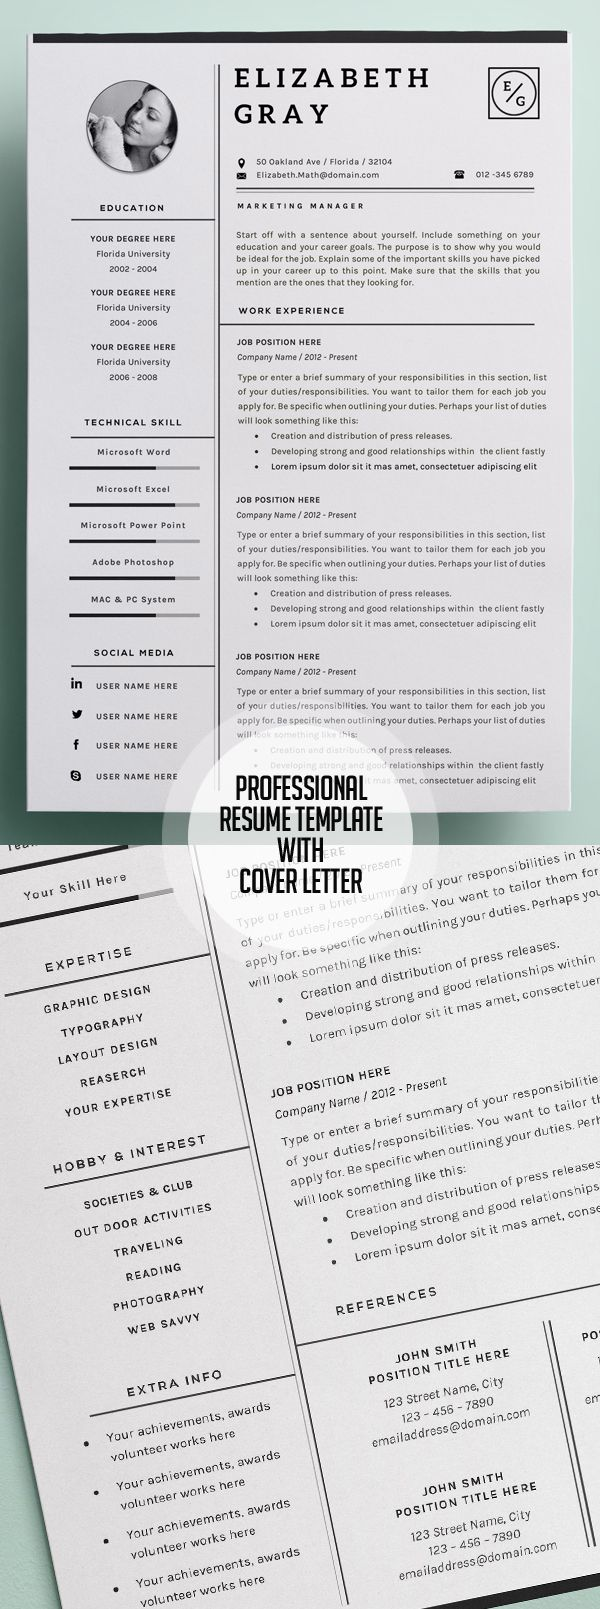 Opposenewapstandardsus  Inspiring  Resume Ideas On Pinterest  Resume Resume Templates And  With Lovely Professional And Modern Resume Template With Page Cover Cvtemplate With Extraordinary Resume Exaples Also Best Way To Write A Resume In Addition Resume Tips For College Students And Human Resources Manager Resume As Well As Font Size Resume Additionally Federal Resume Writers From Pinterestcom With Opposenewapstandardsus  Lovely  Resume Ideas On Pinterest  Resume Resume Templates And  With Extraordinary Professional And Modern Resume Template With Page Cover Cvtemplate And Inspiring Resume Exaples Also Best Way To Write A Resume In Addition Resume Tips For College Students From Pinterestcom